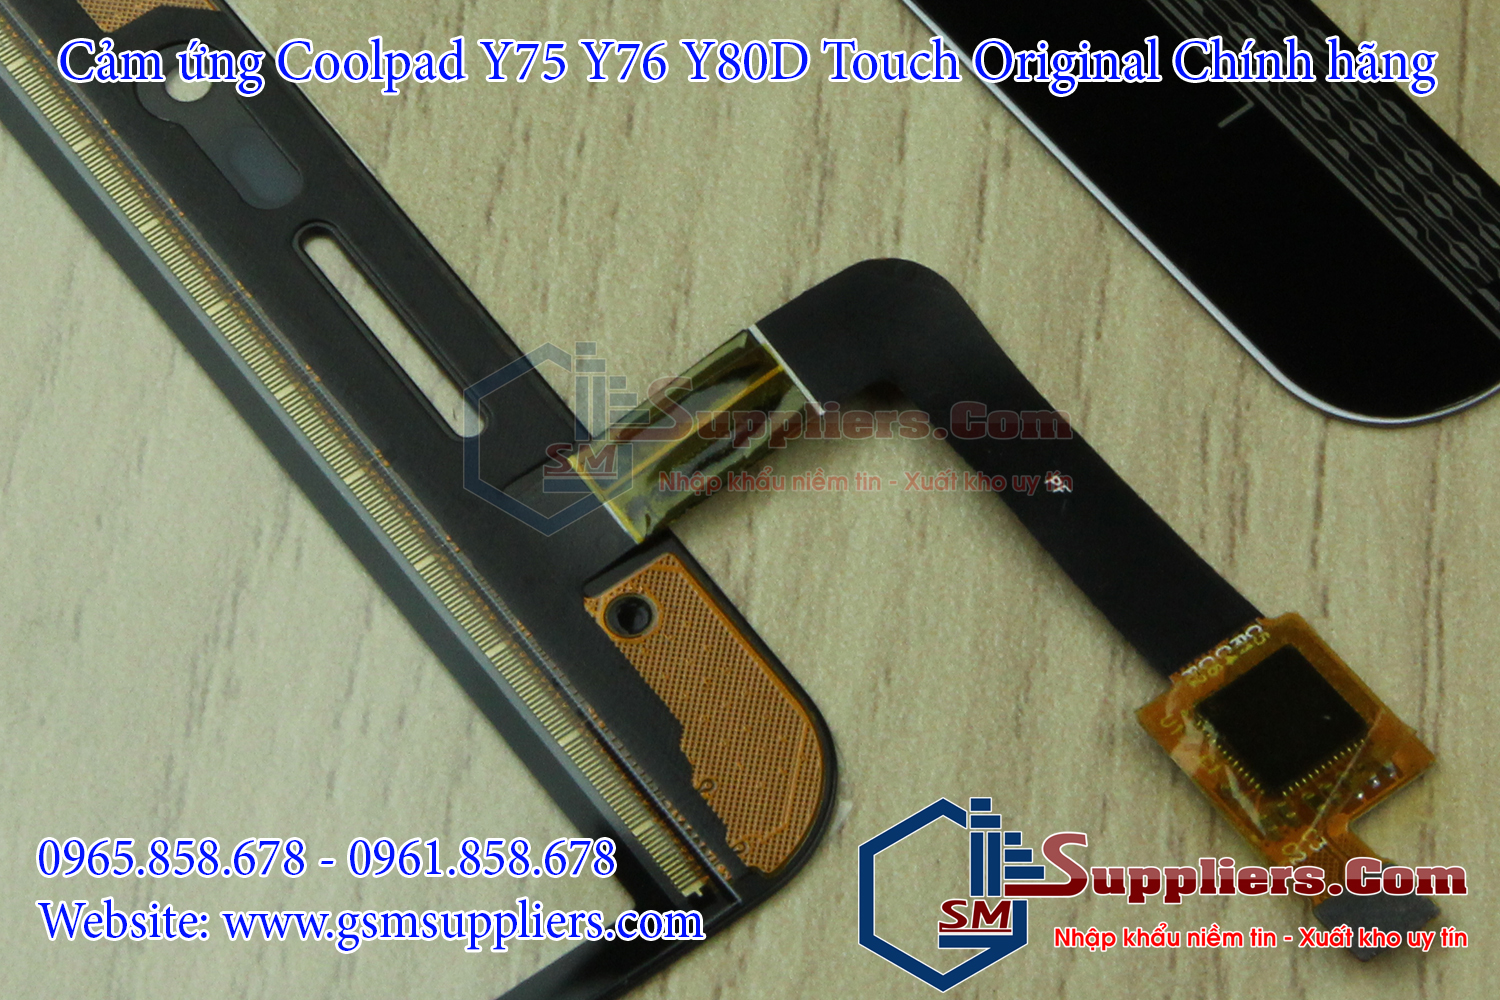 cam ung coolpad y75 y76 y80d touch original chinh hang 5